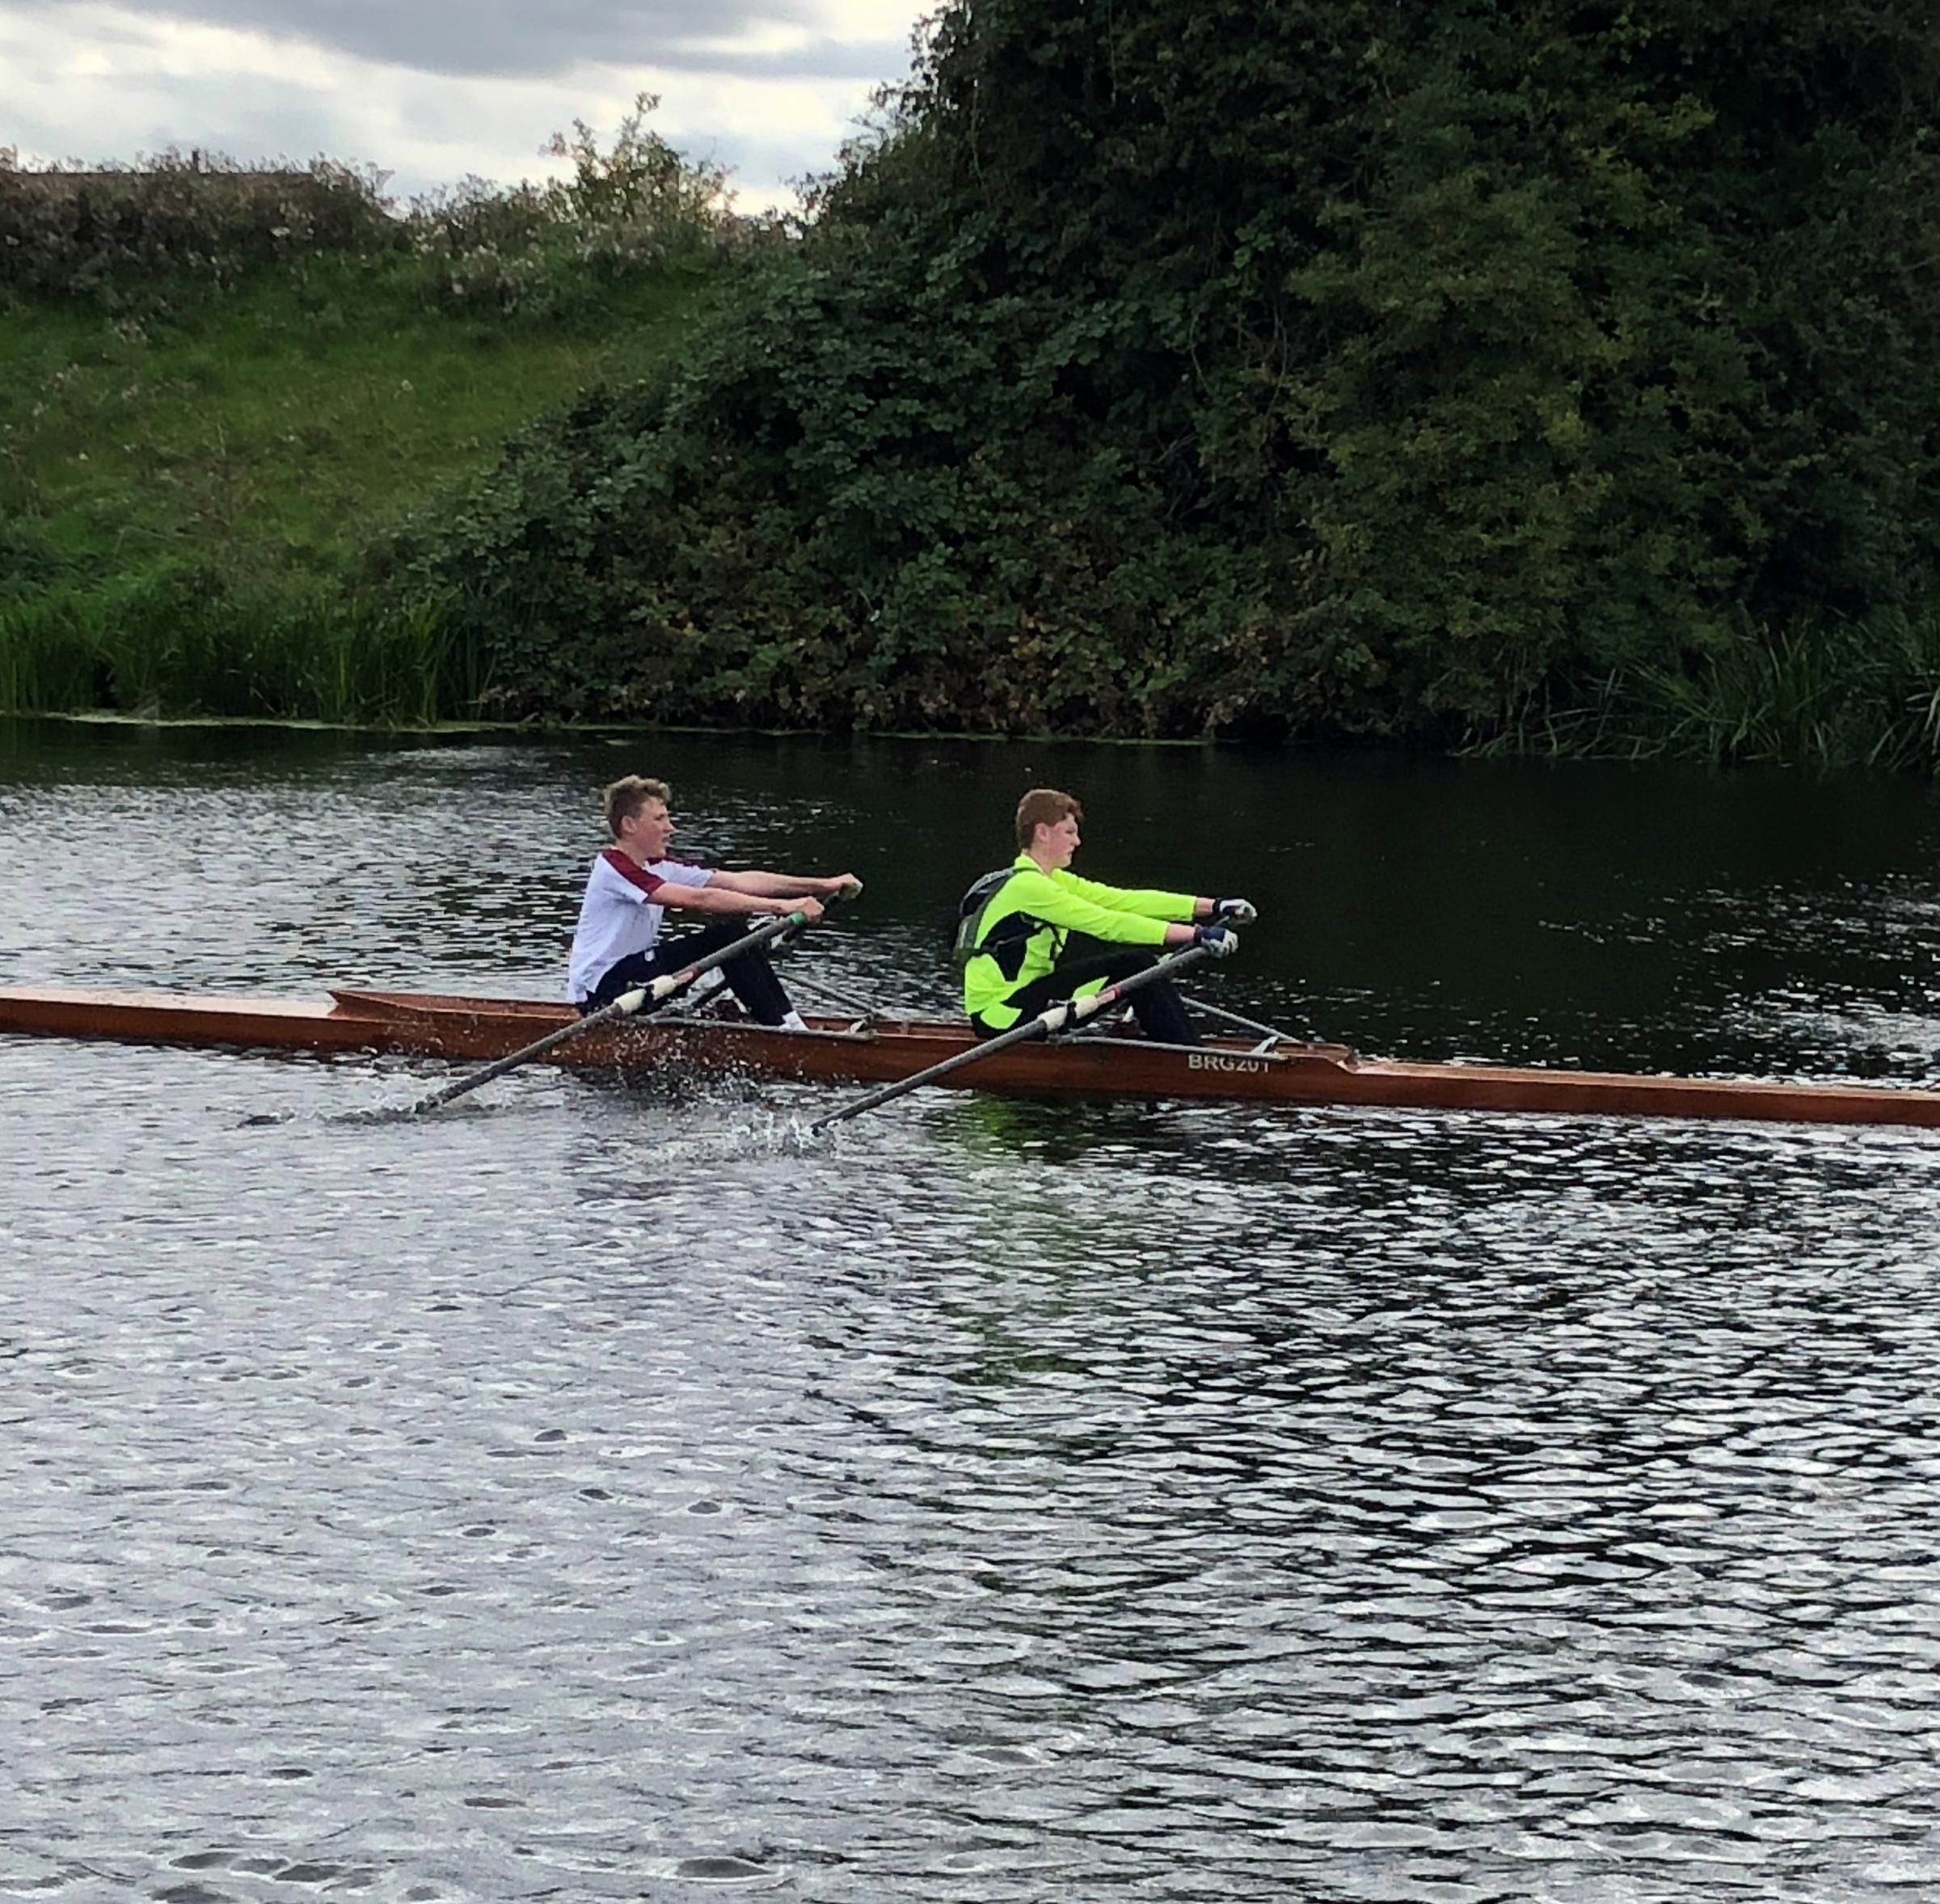 Harry Burns and Ruairi Hawthorn are pictured taking part in the Boston rowing marathon